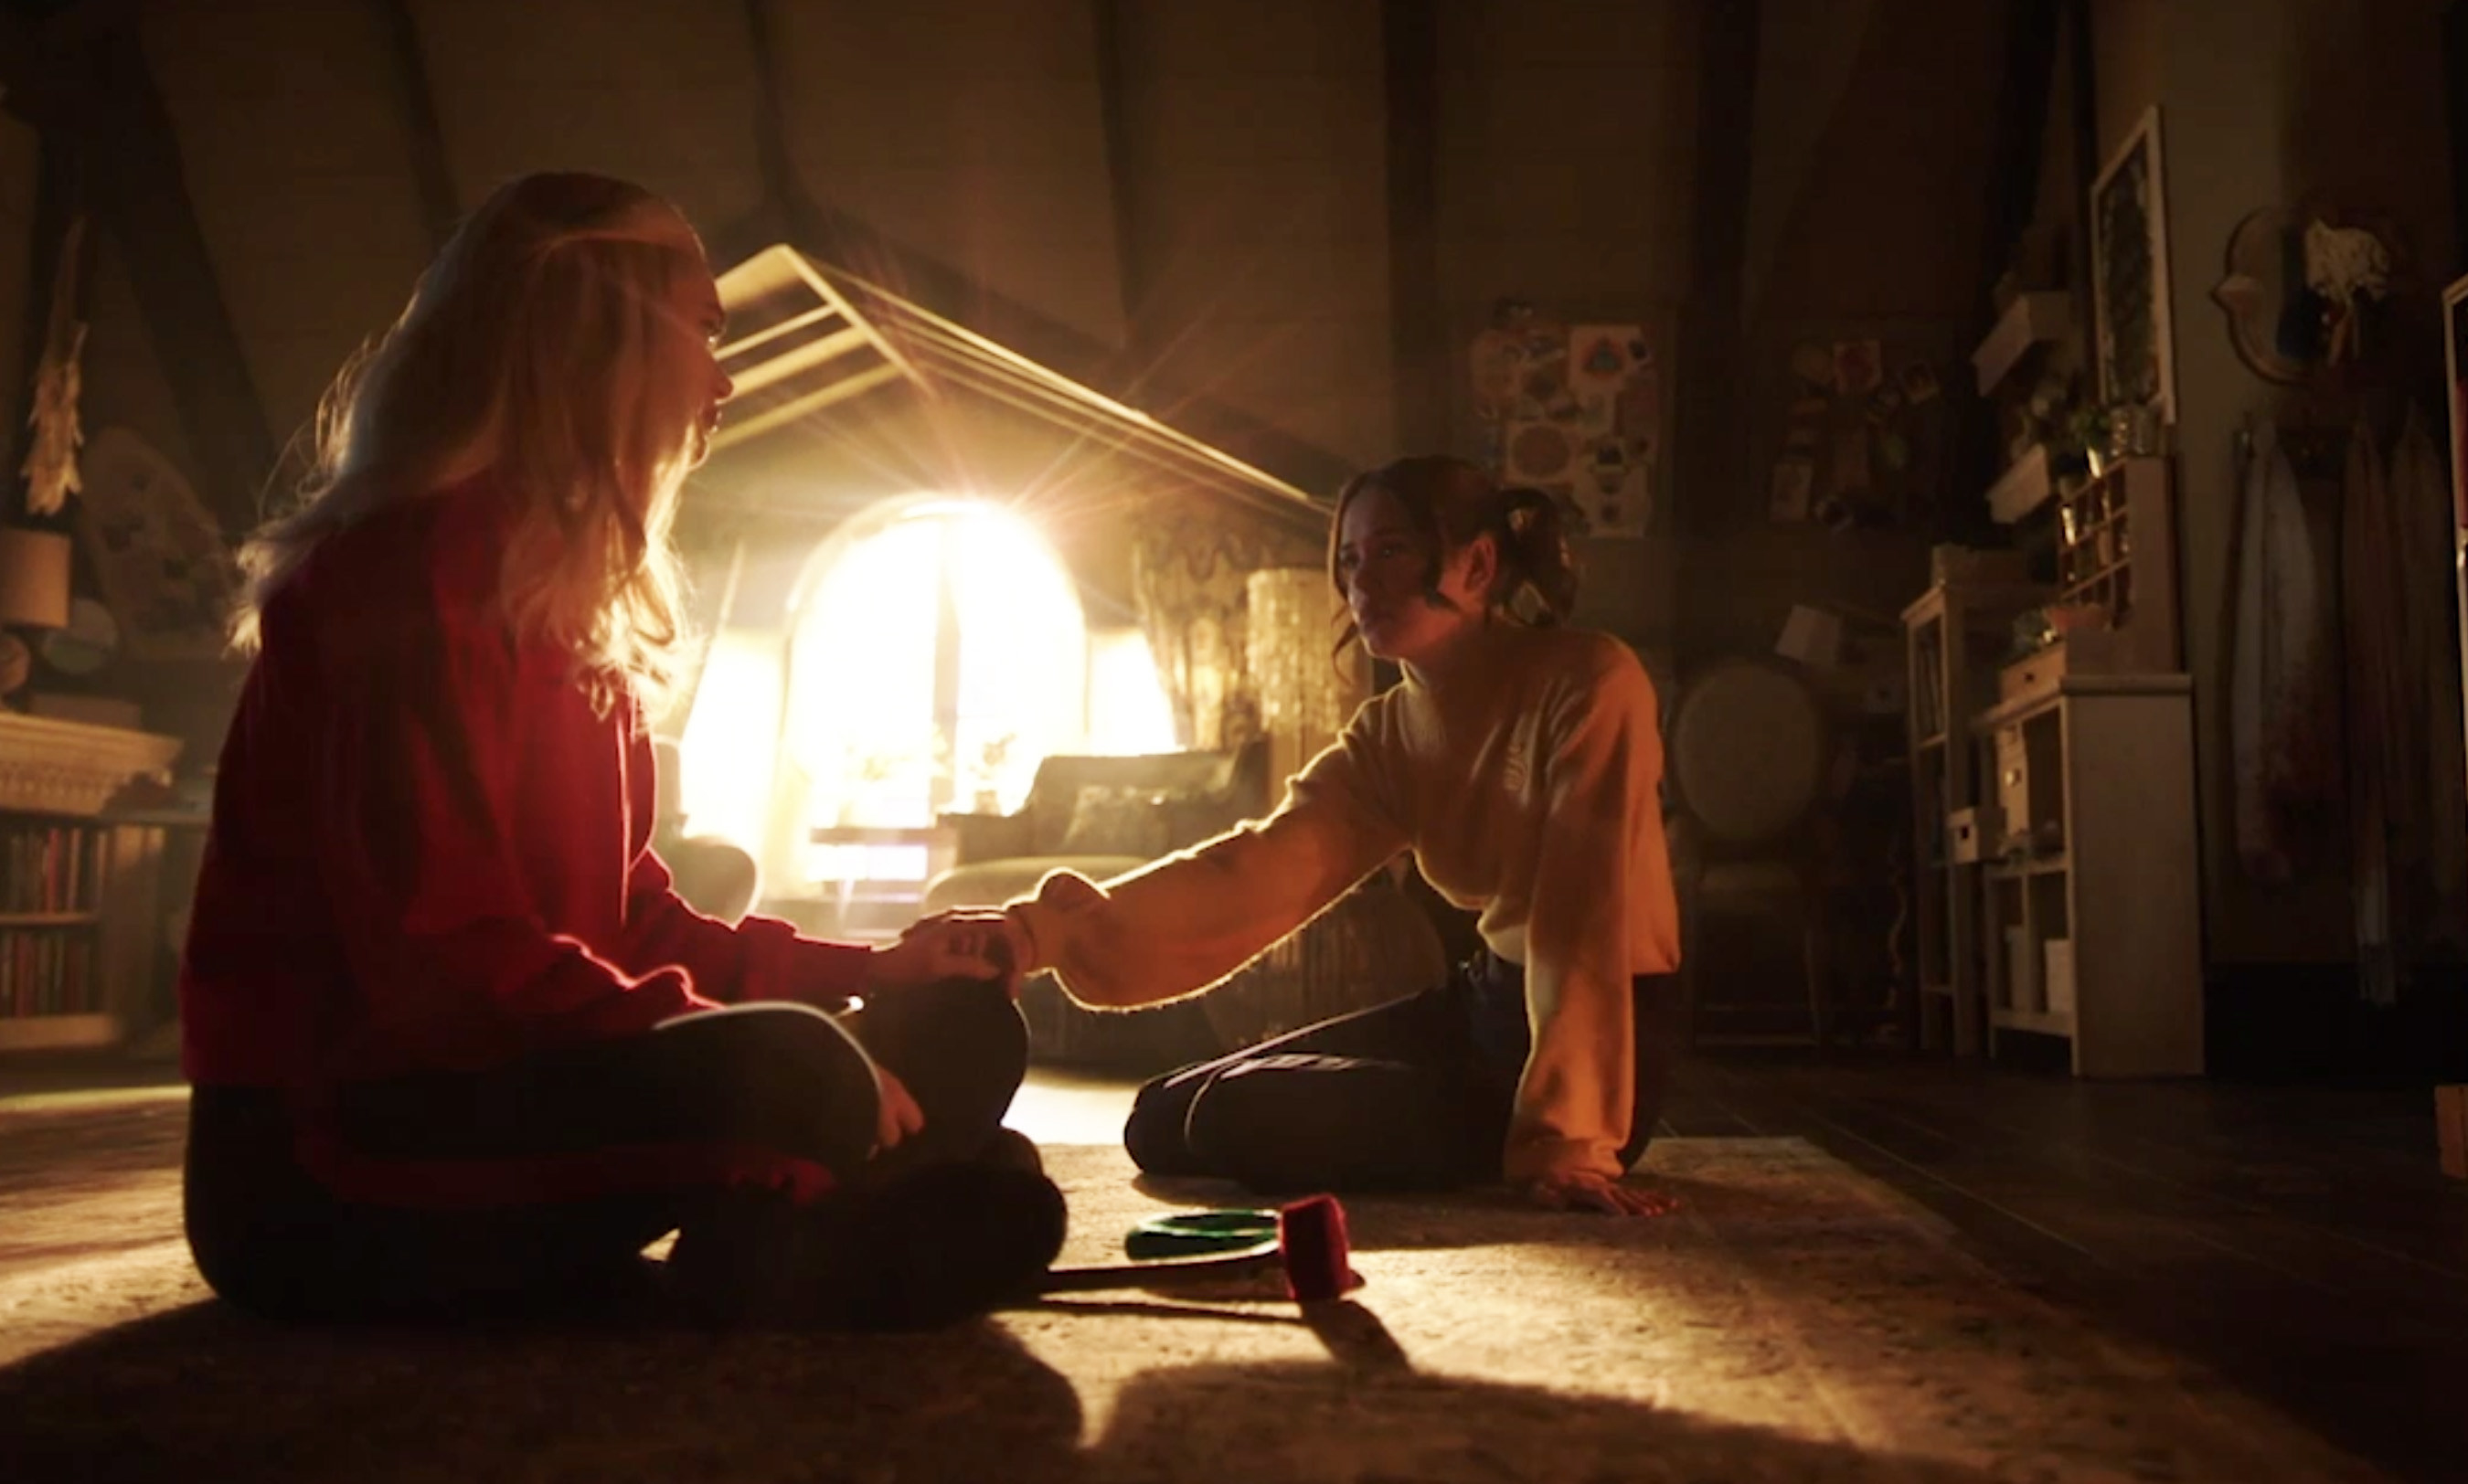 Lizzie and Josie holding hands in their bedroom